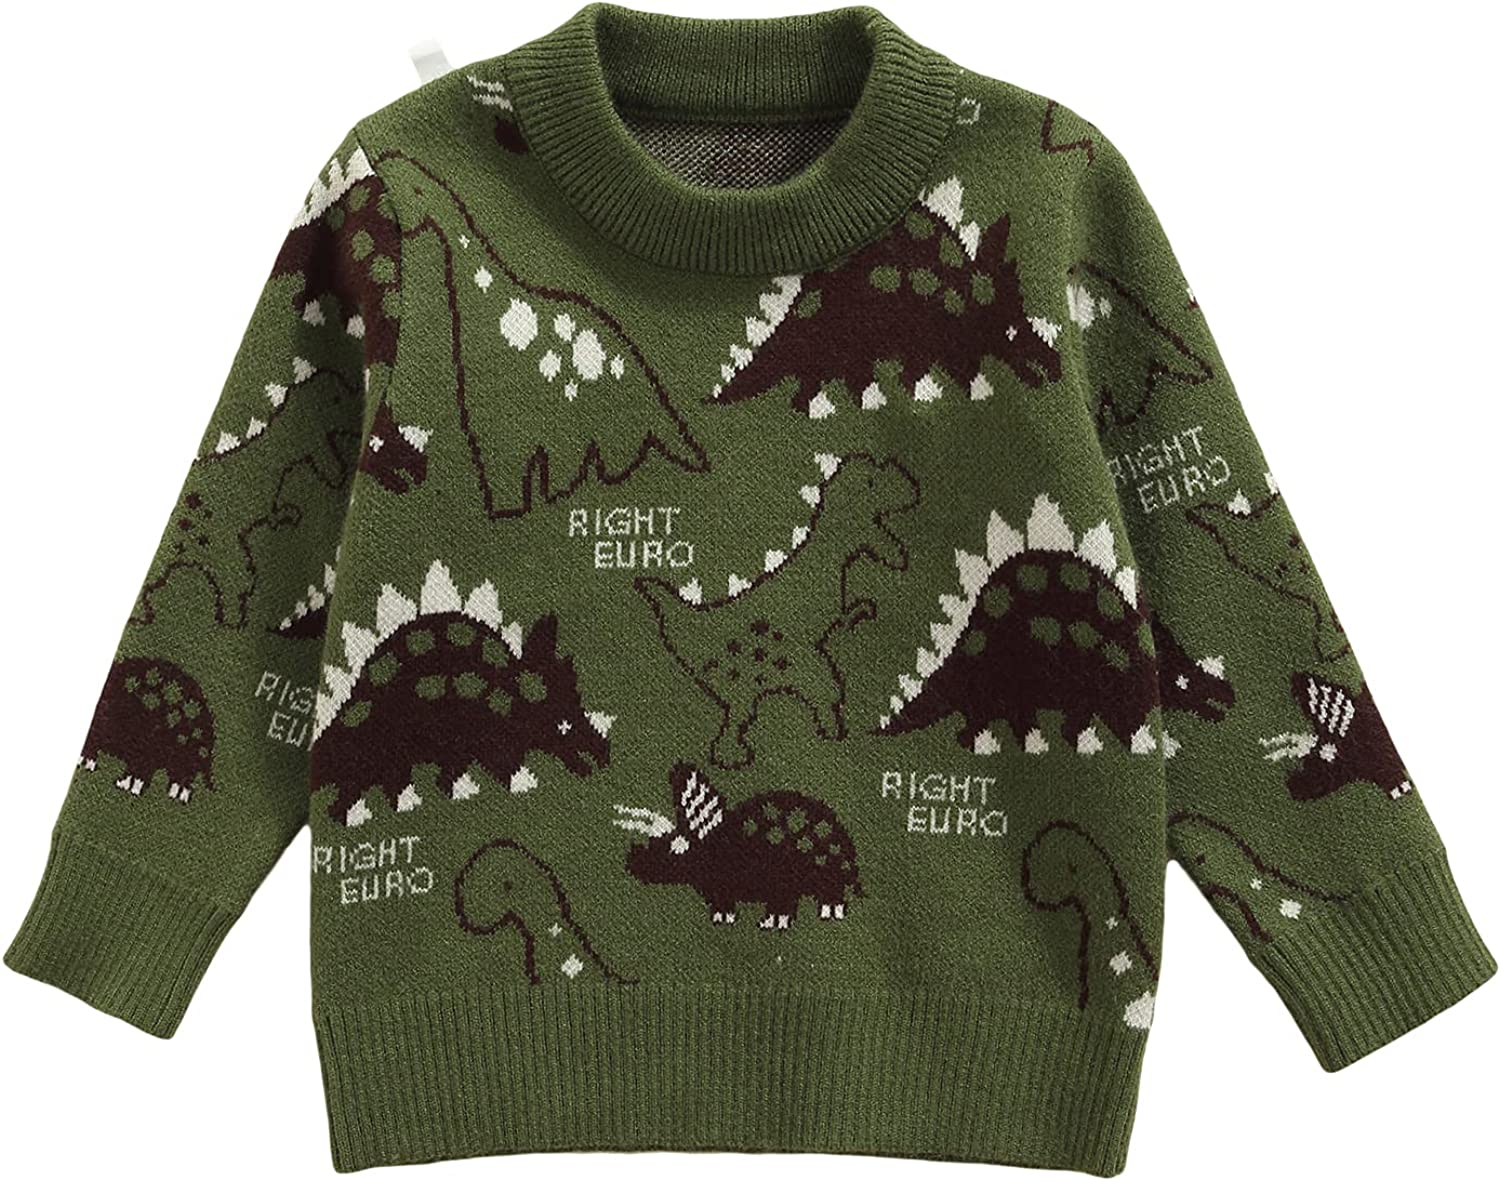 Toddler Boys Long Sleeve Sweater Dinosaur Letters Printed Knitted Pullover Top Elastic Fall Winter Clothe